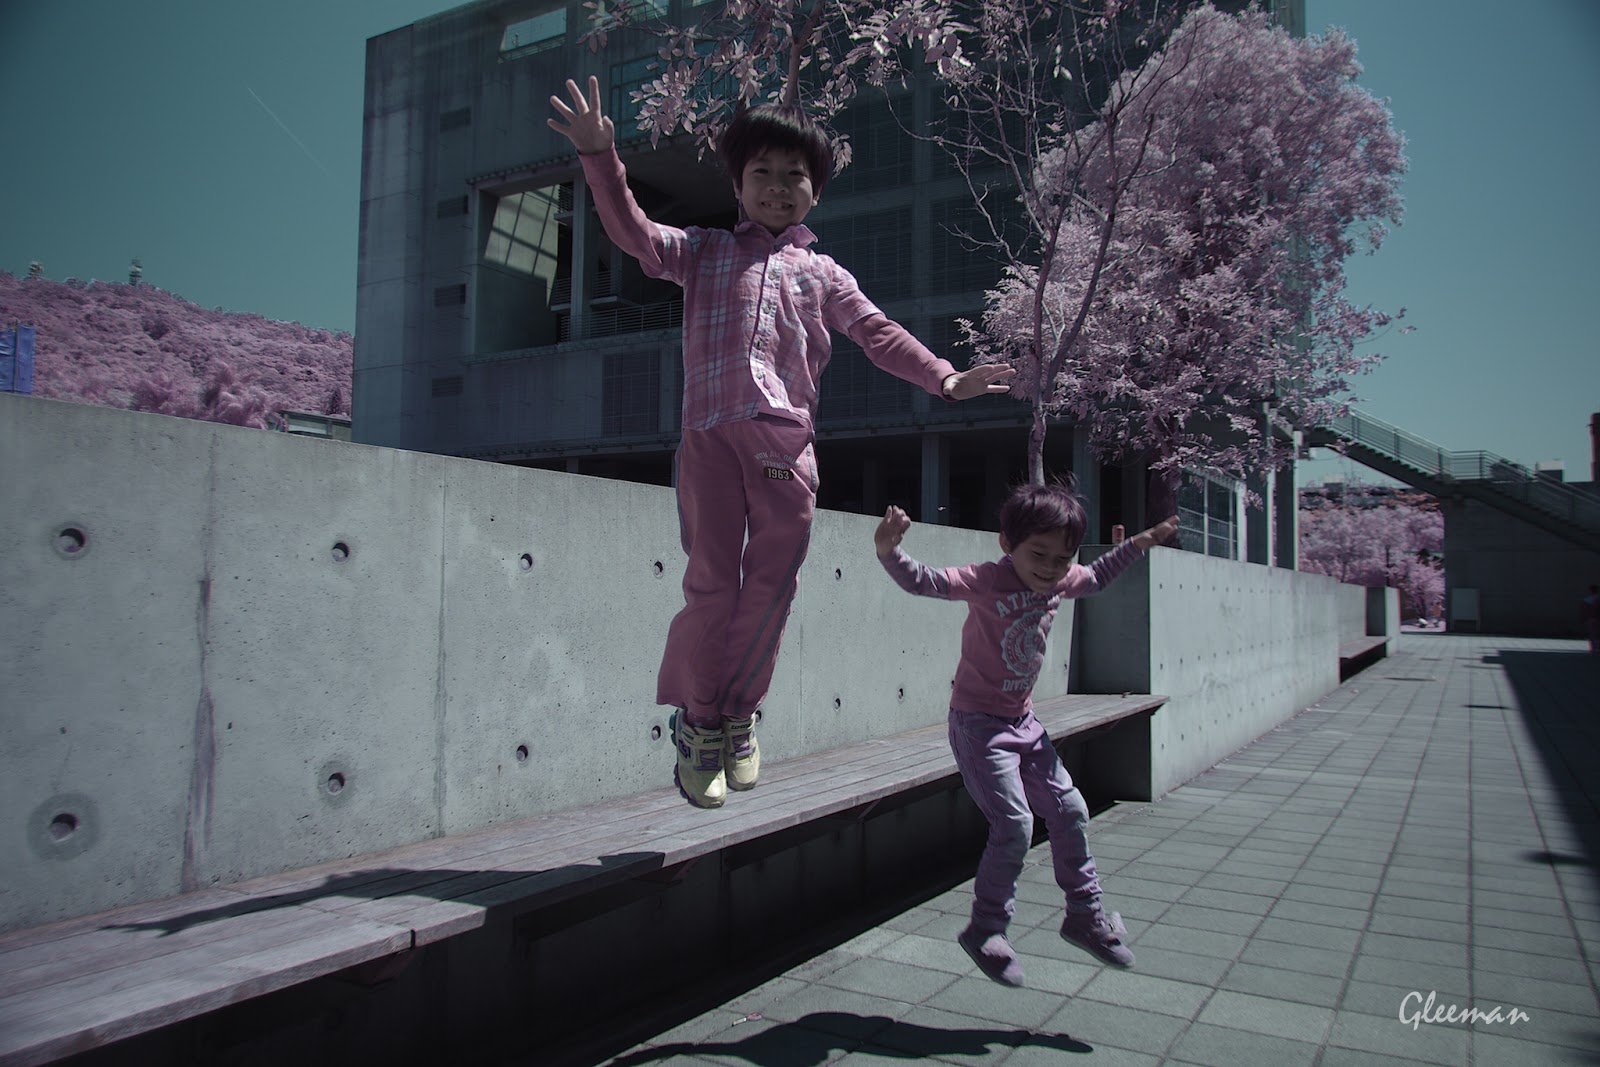 彩色紅外線攝影 (Pentax K5 Color IR Photography), Jump again!